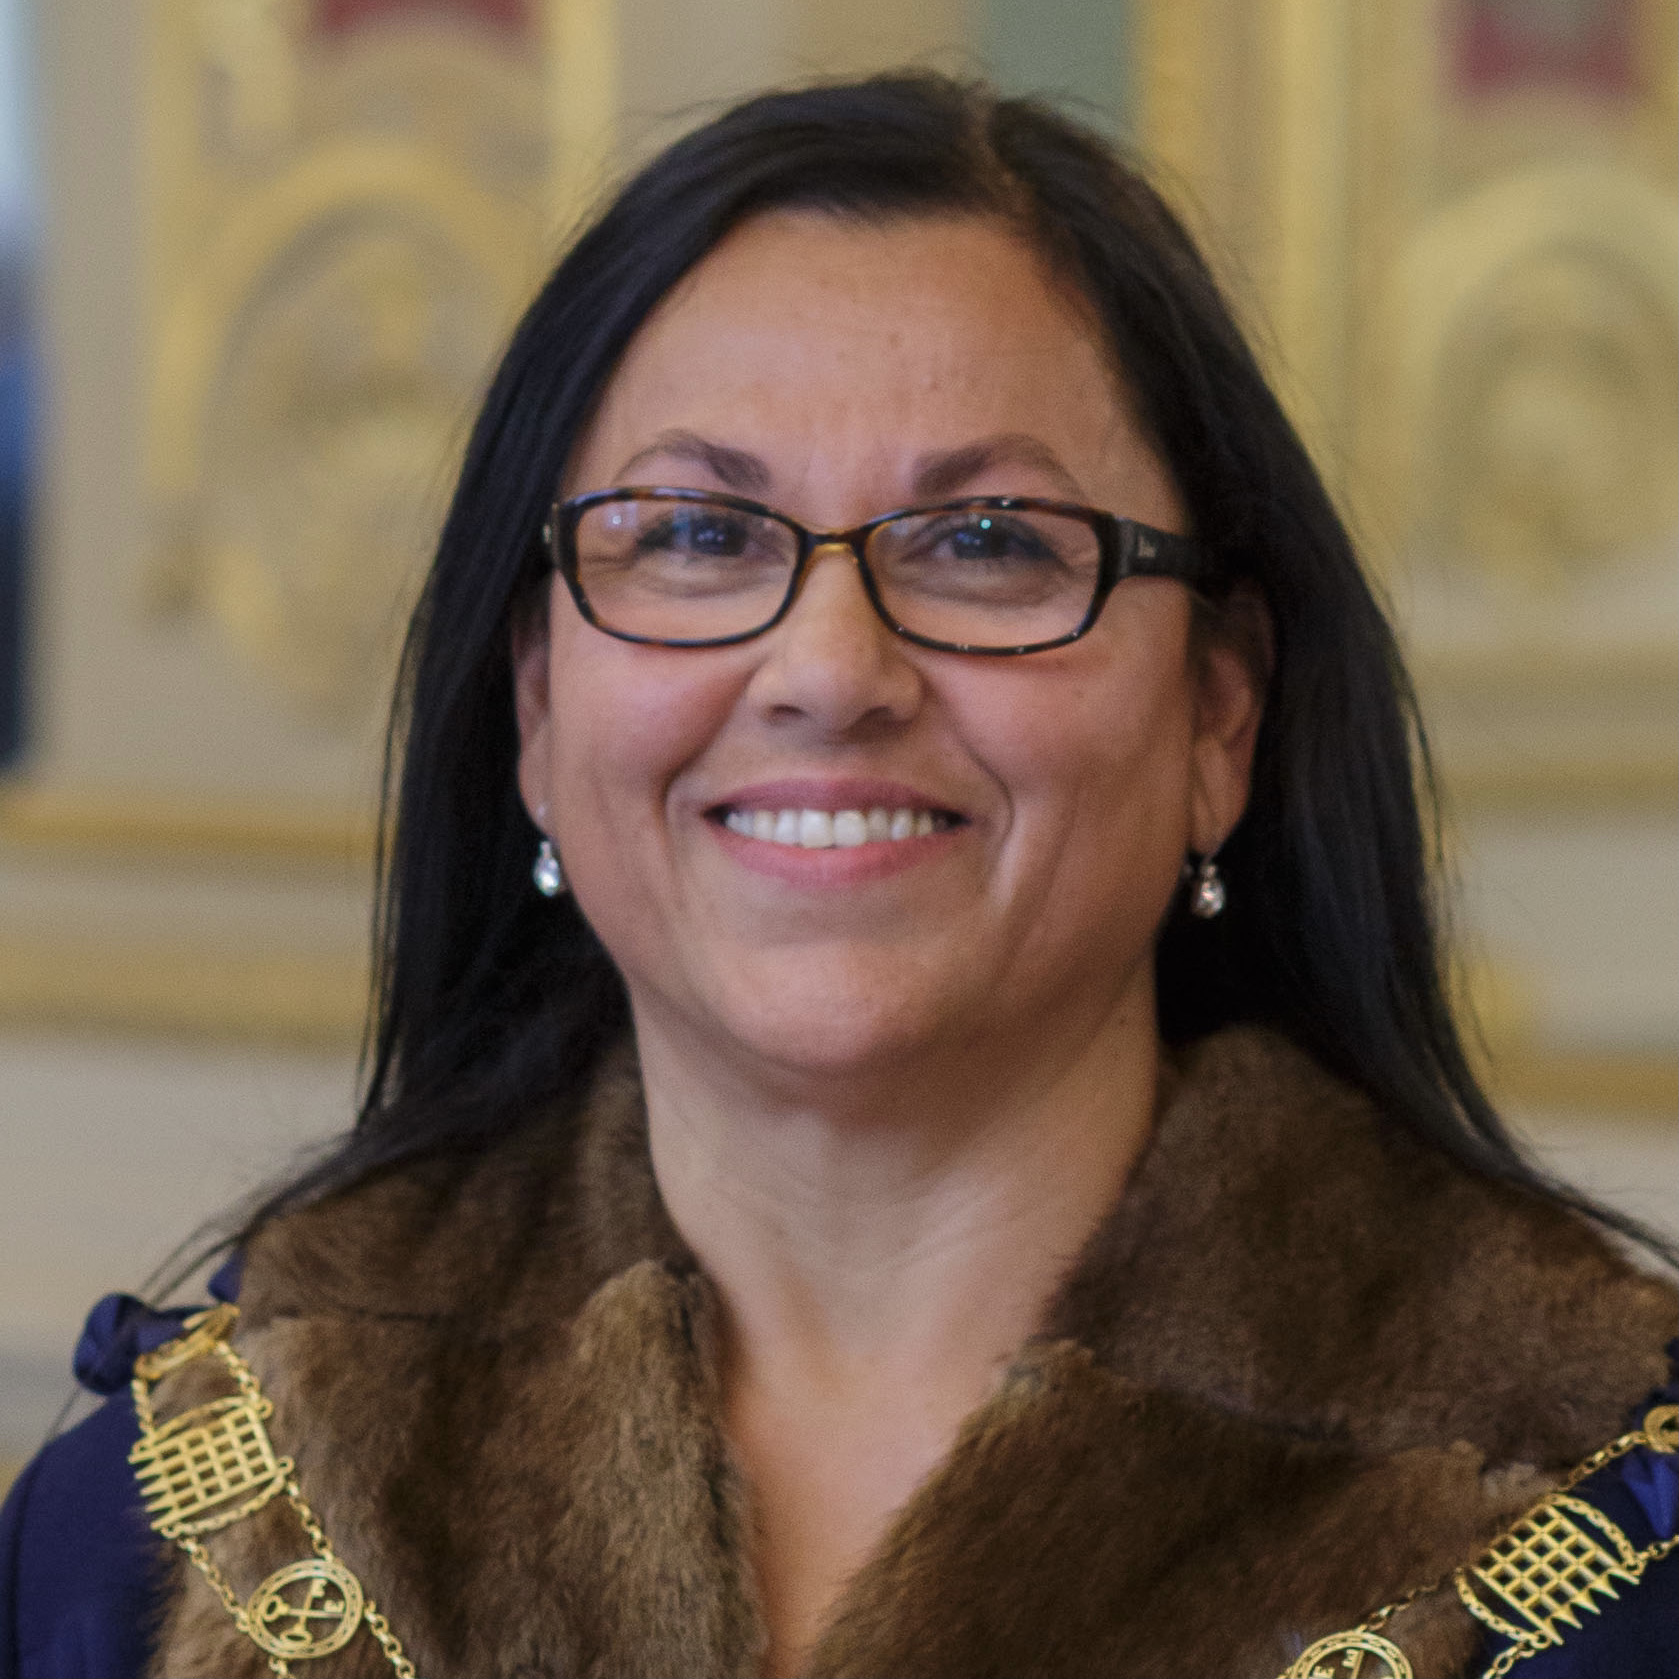 Yasmeen Stratton Master of the Worshipful Company of Security Professionals (2020 to 2021)